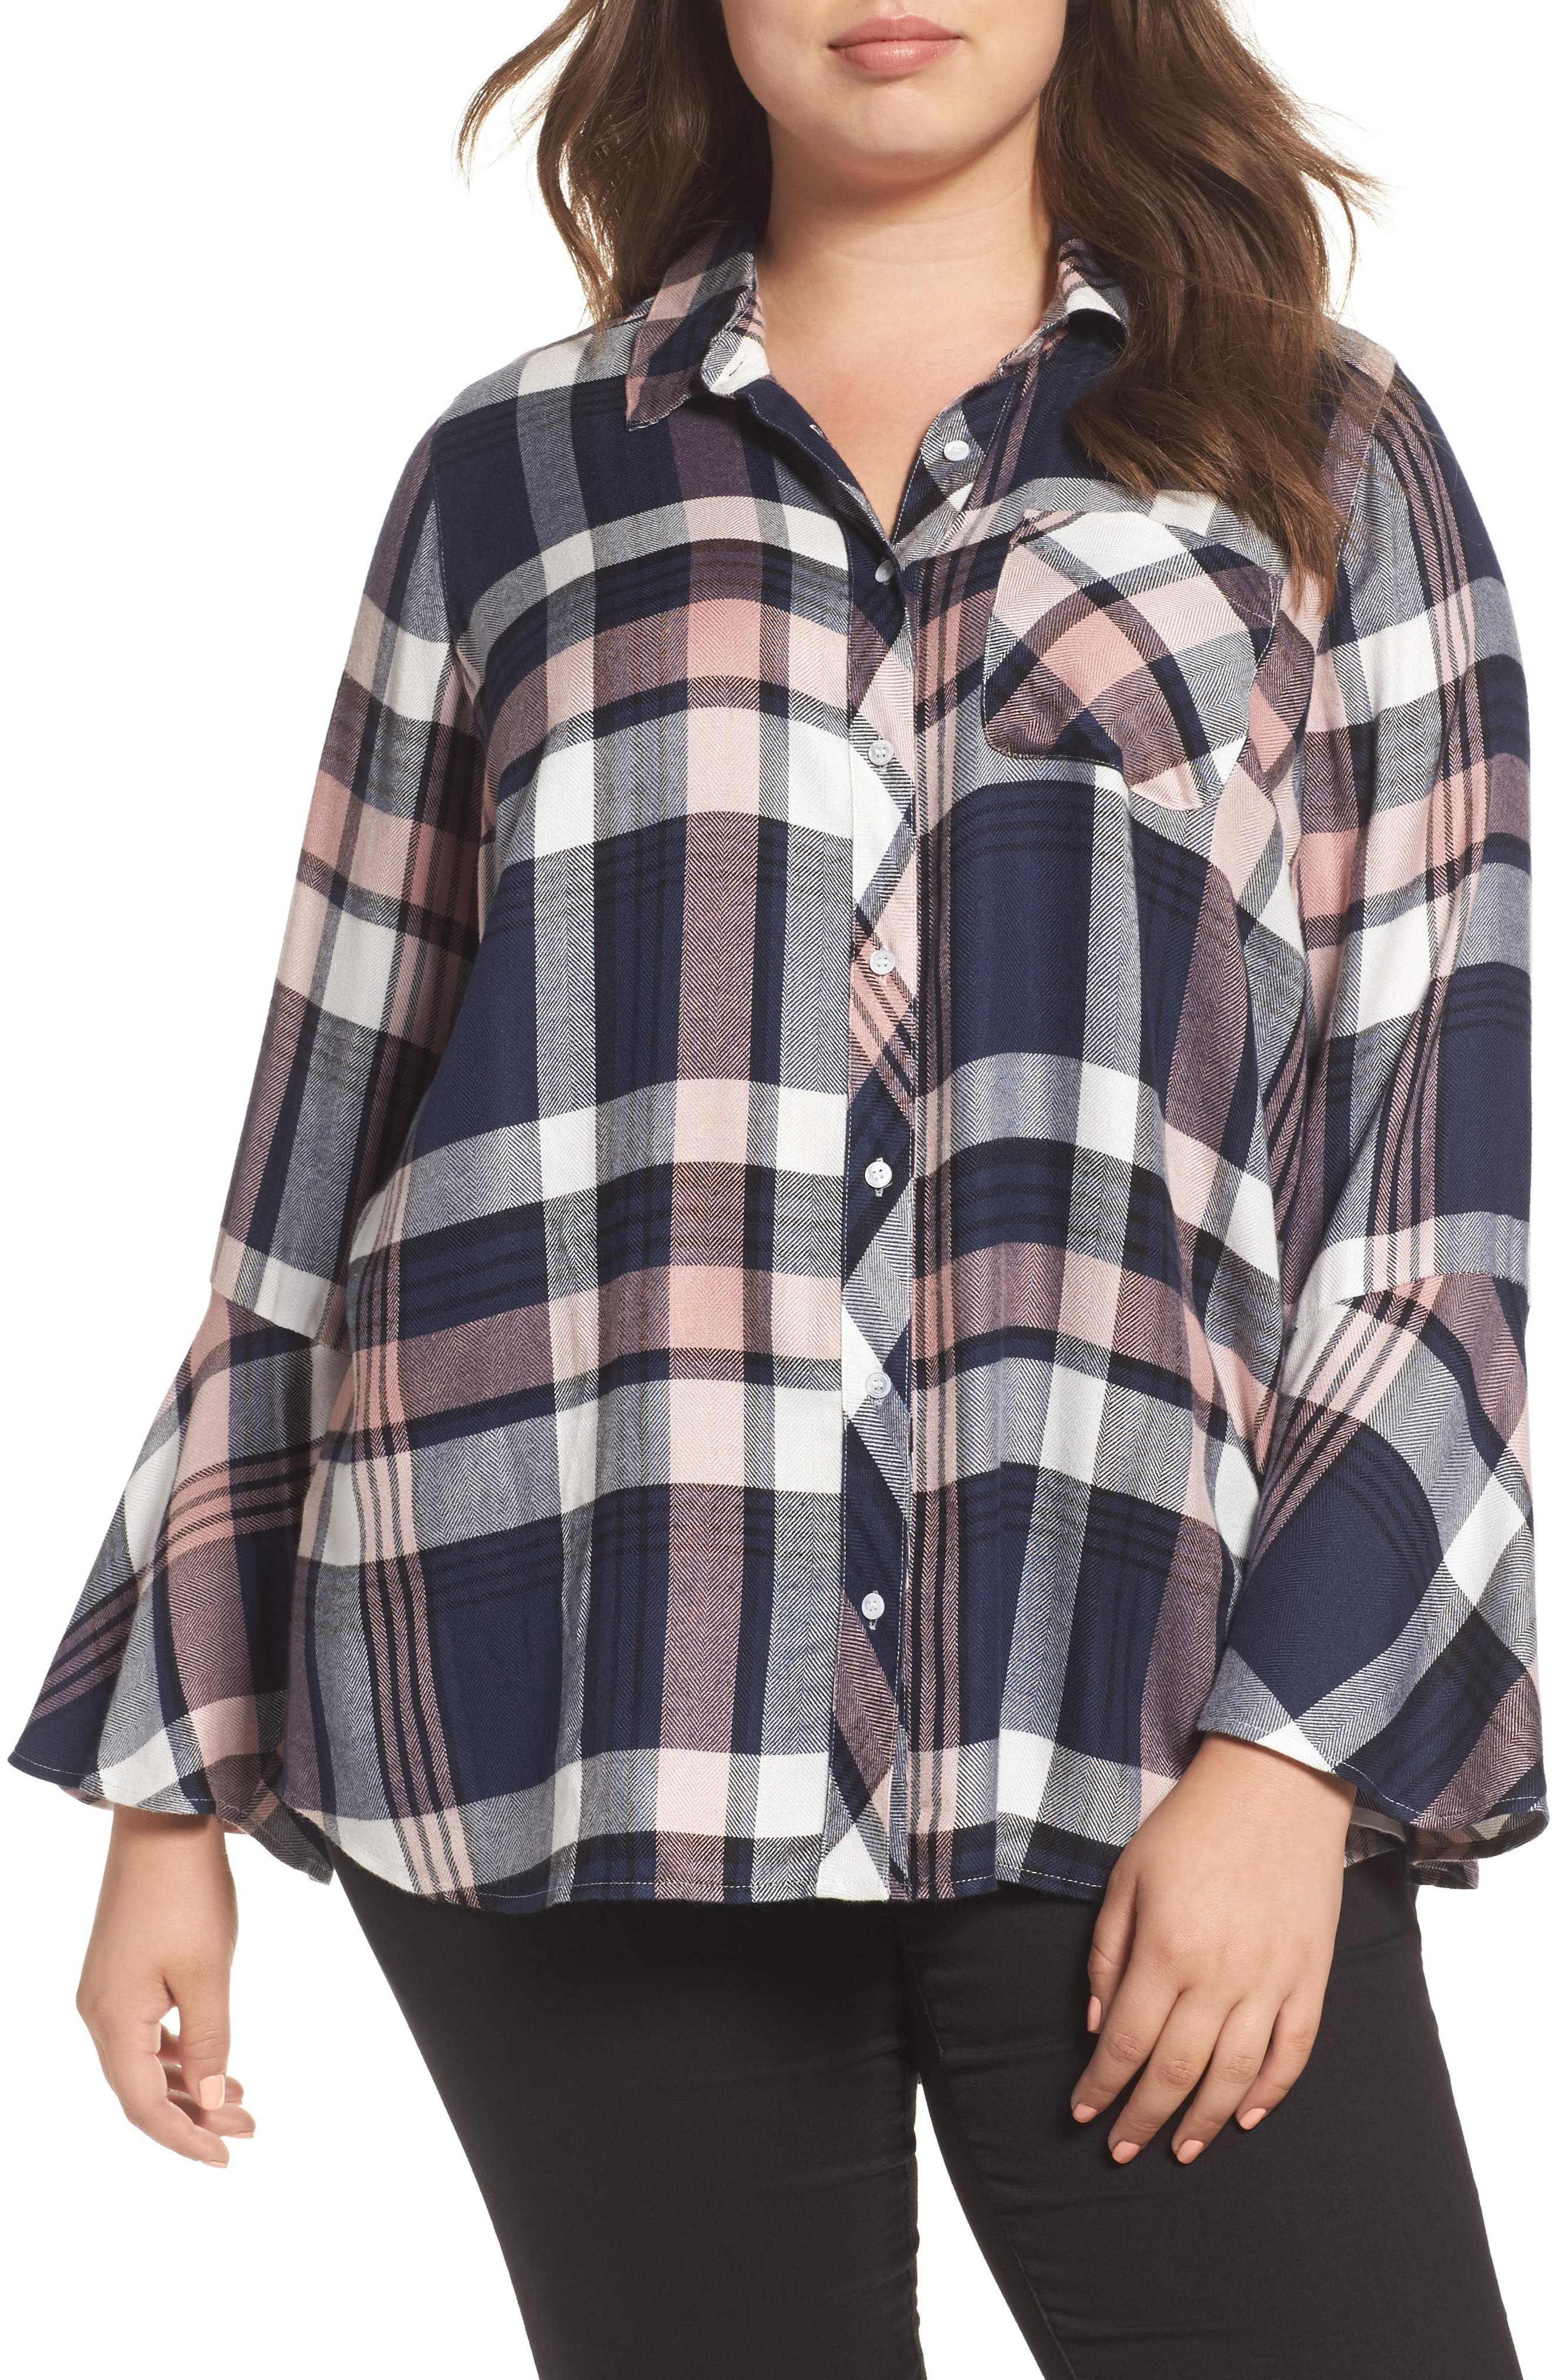 Main Image - Two by Vince Camuto Plaid Bell Sleeve Shirt (Plus Size)